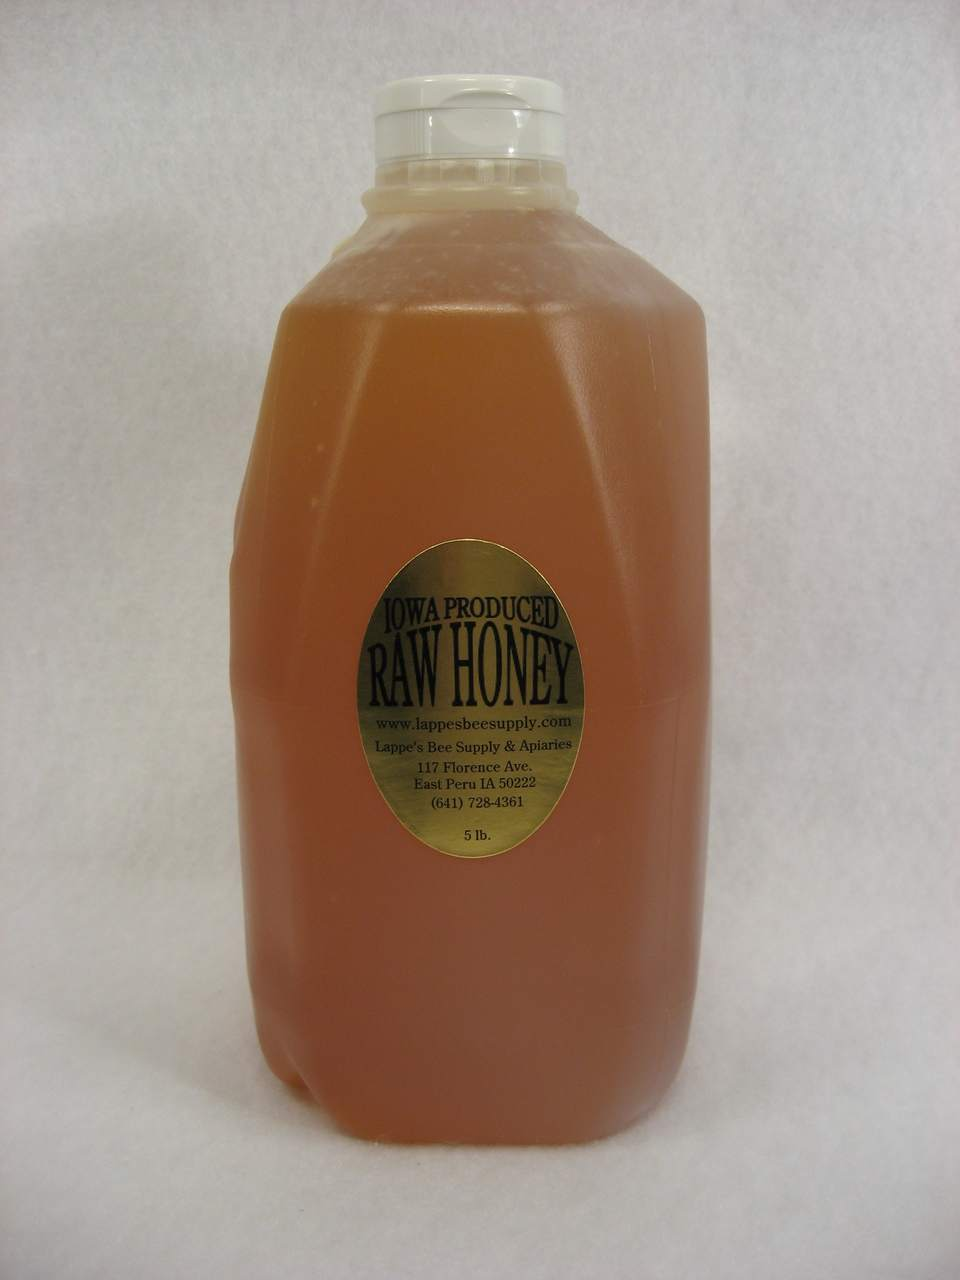 5 lb. Iowa produced raw honey